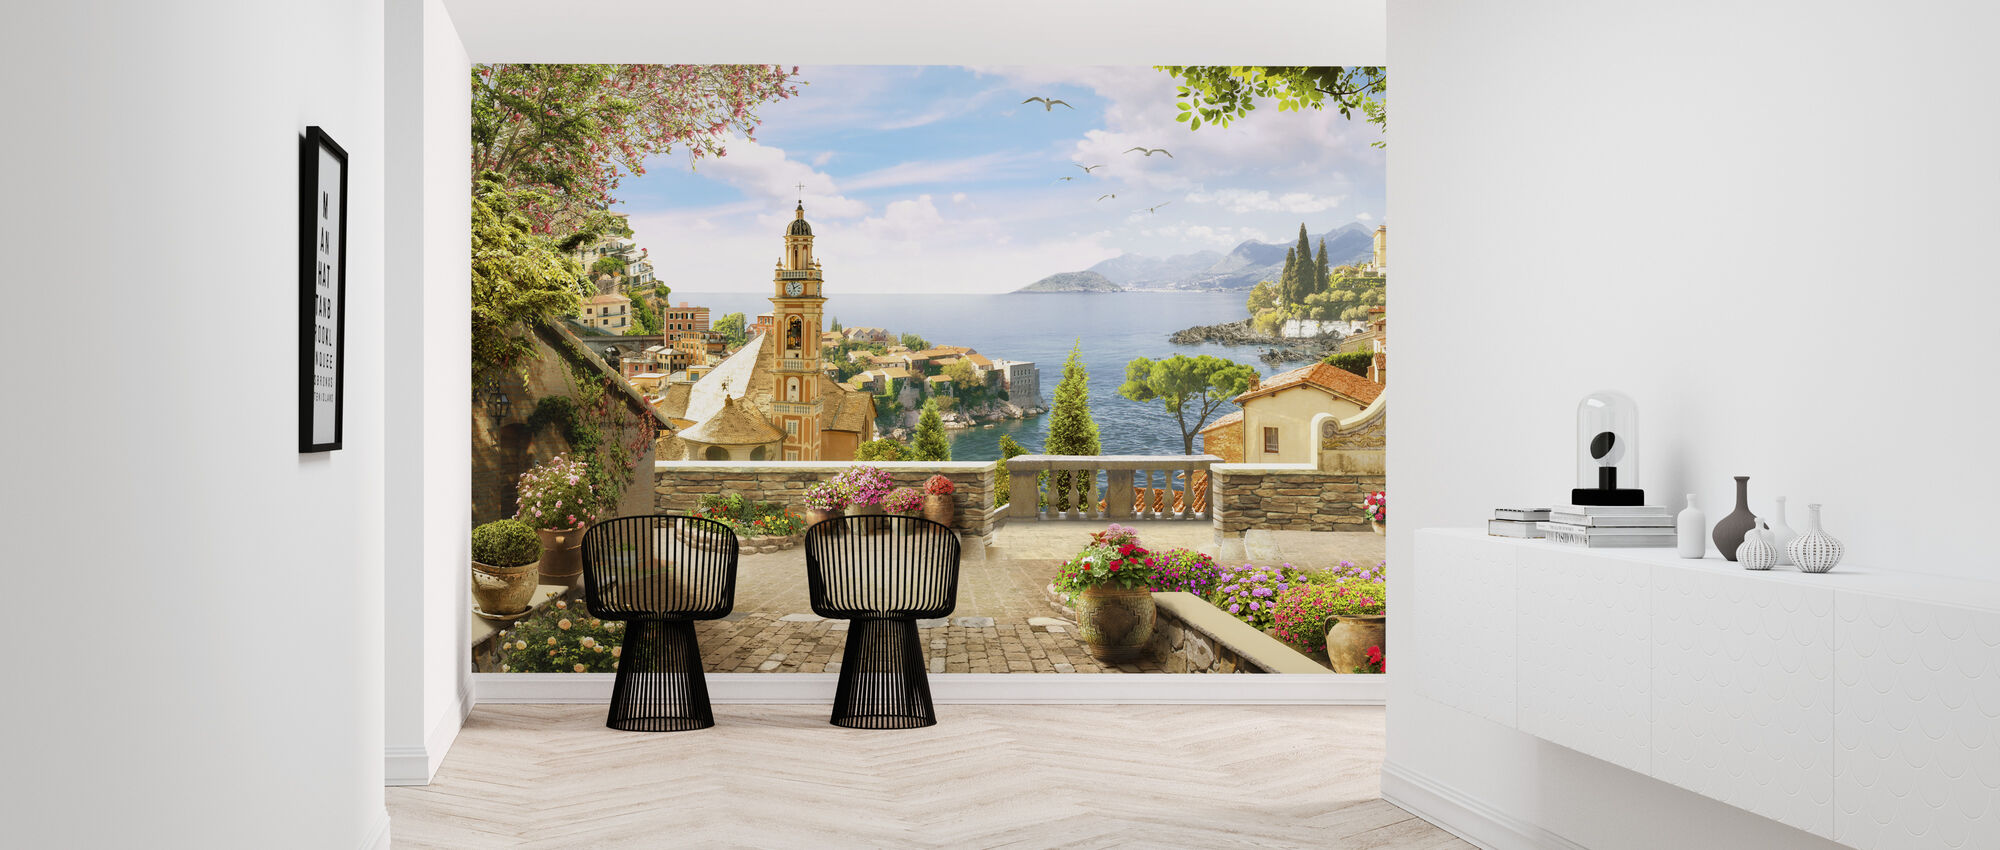 Stunning View of Amalfi - Wallpaper - Hallway